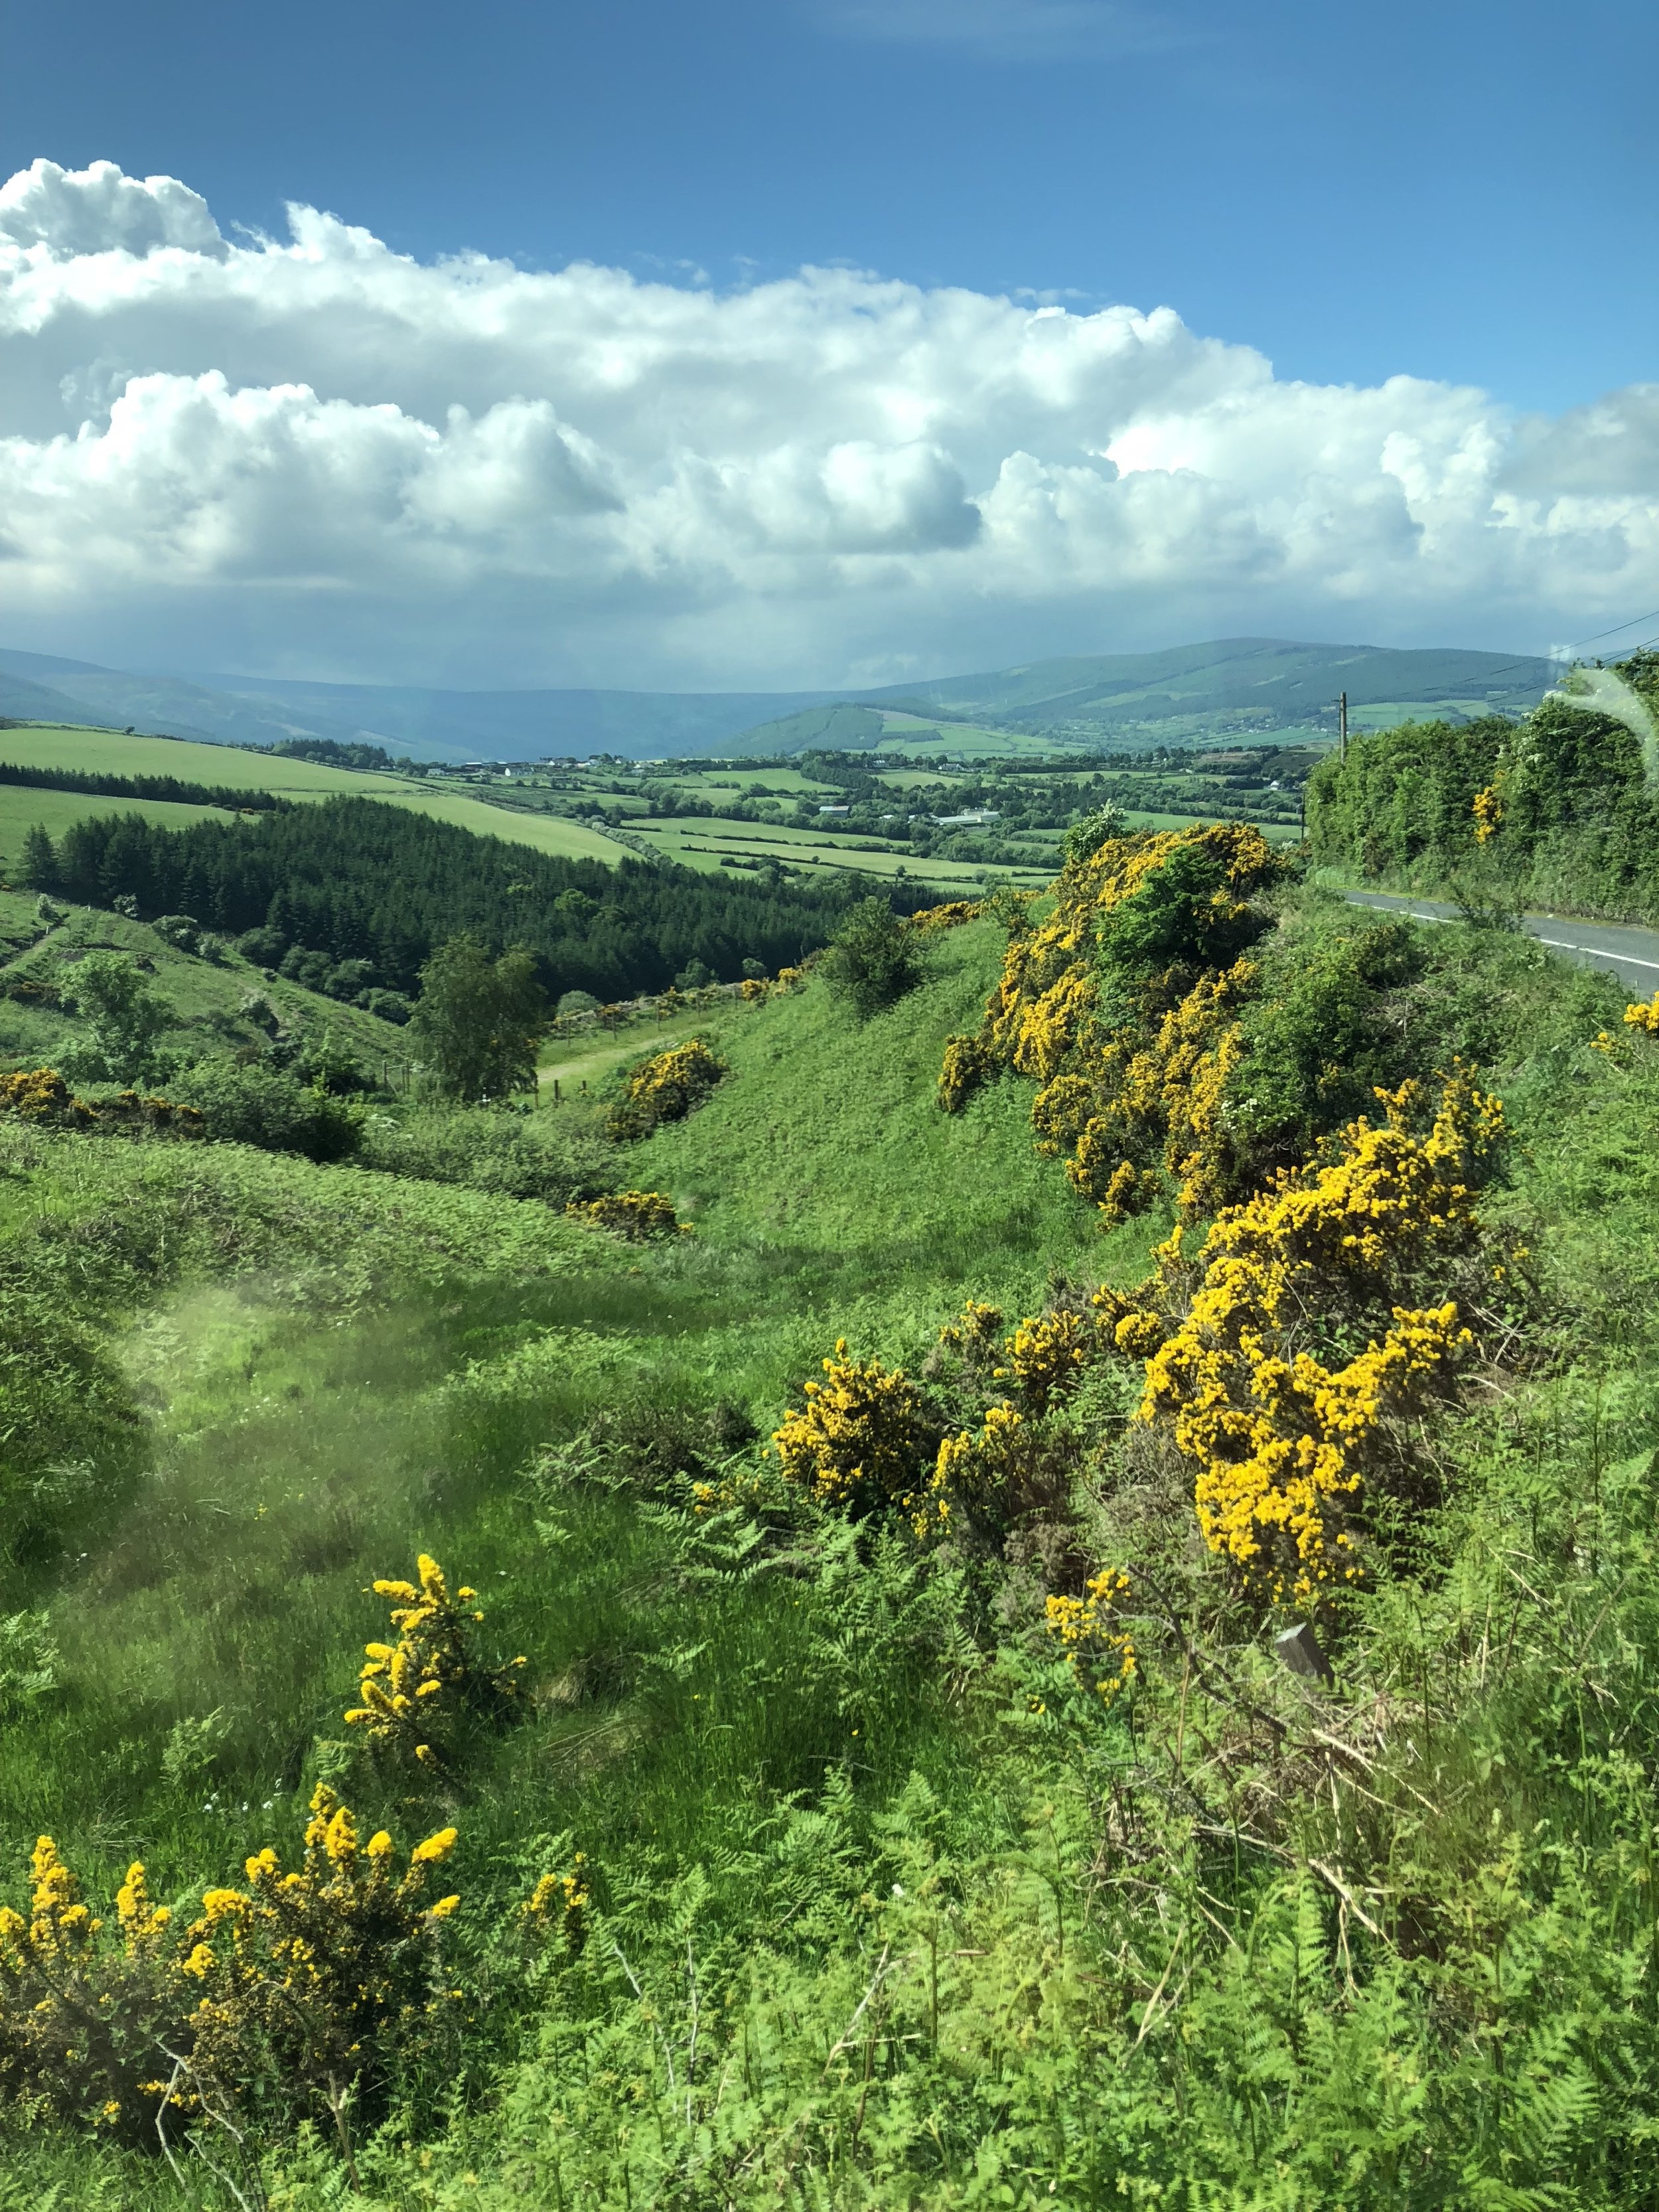 Let me state the obvious: Ireland is very green.